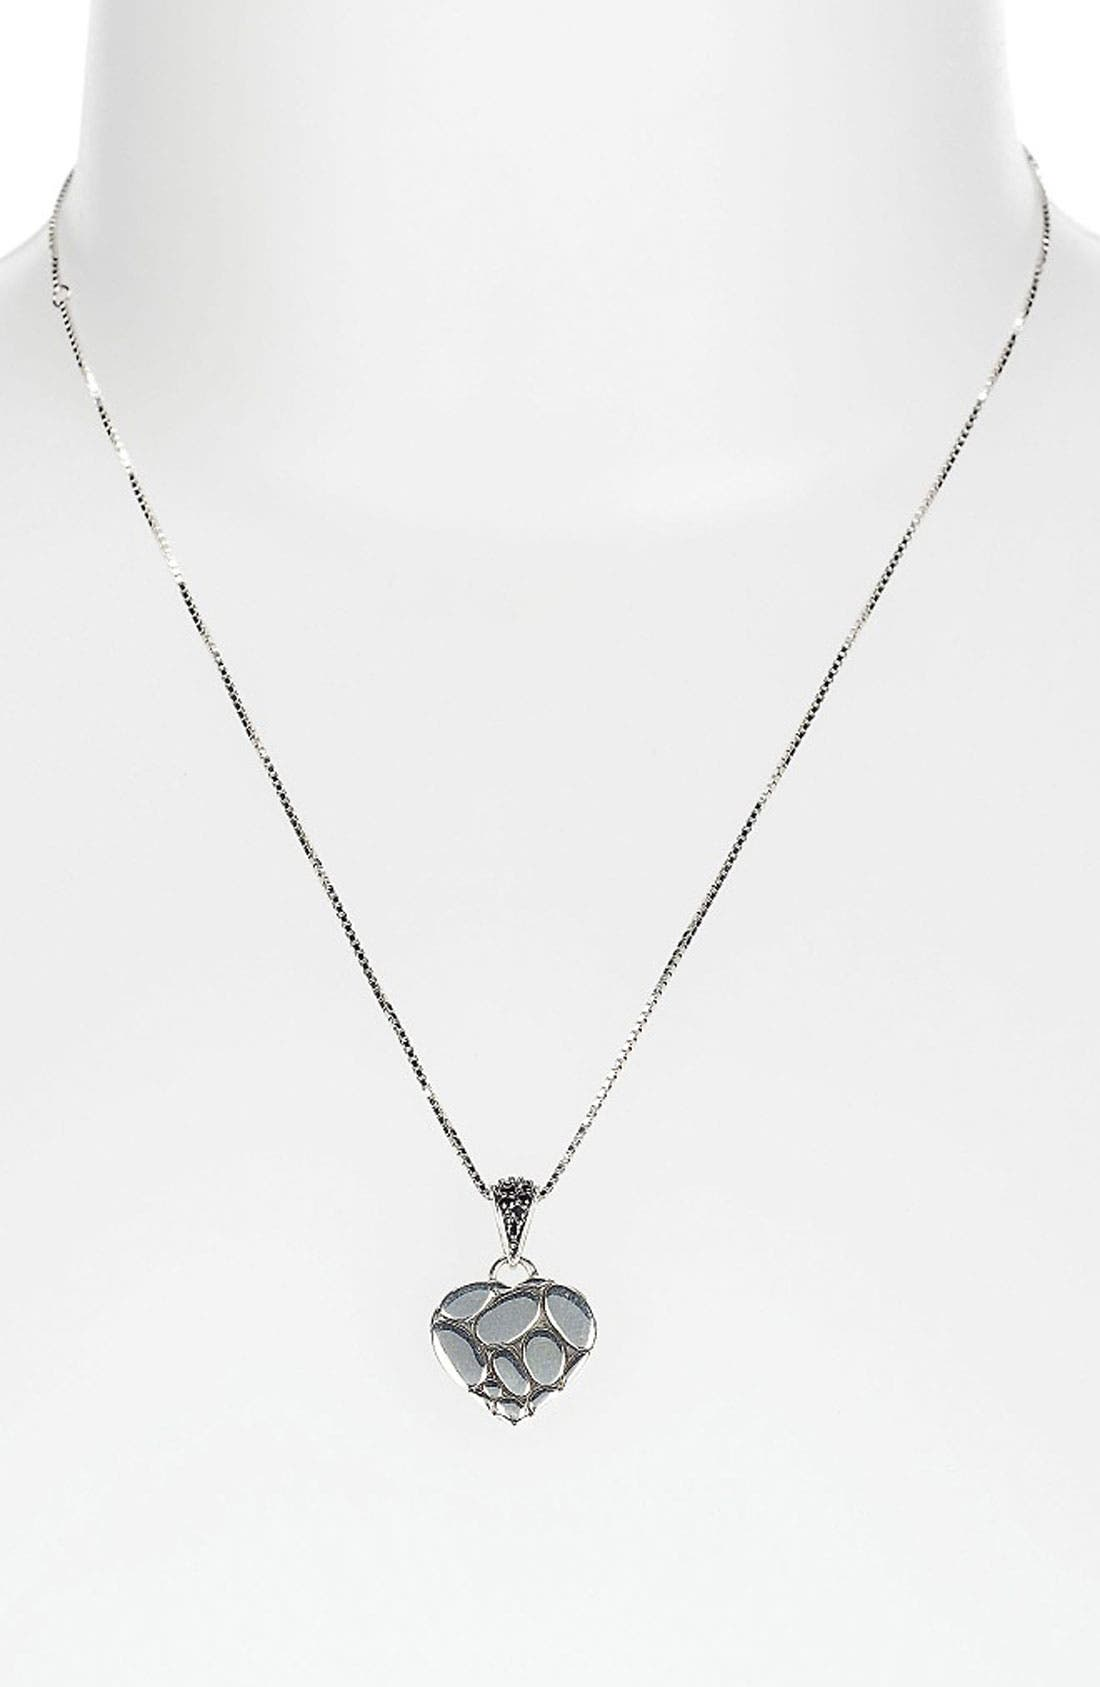 Main Image - John Hardy 'Kali Silver Lava' Boxed Heart Pendant Necklace (Nordstrom Exclusive)